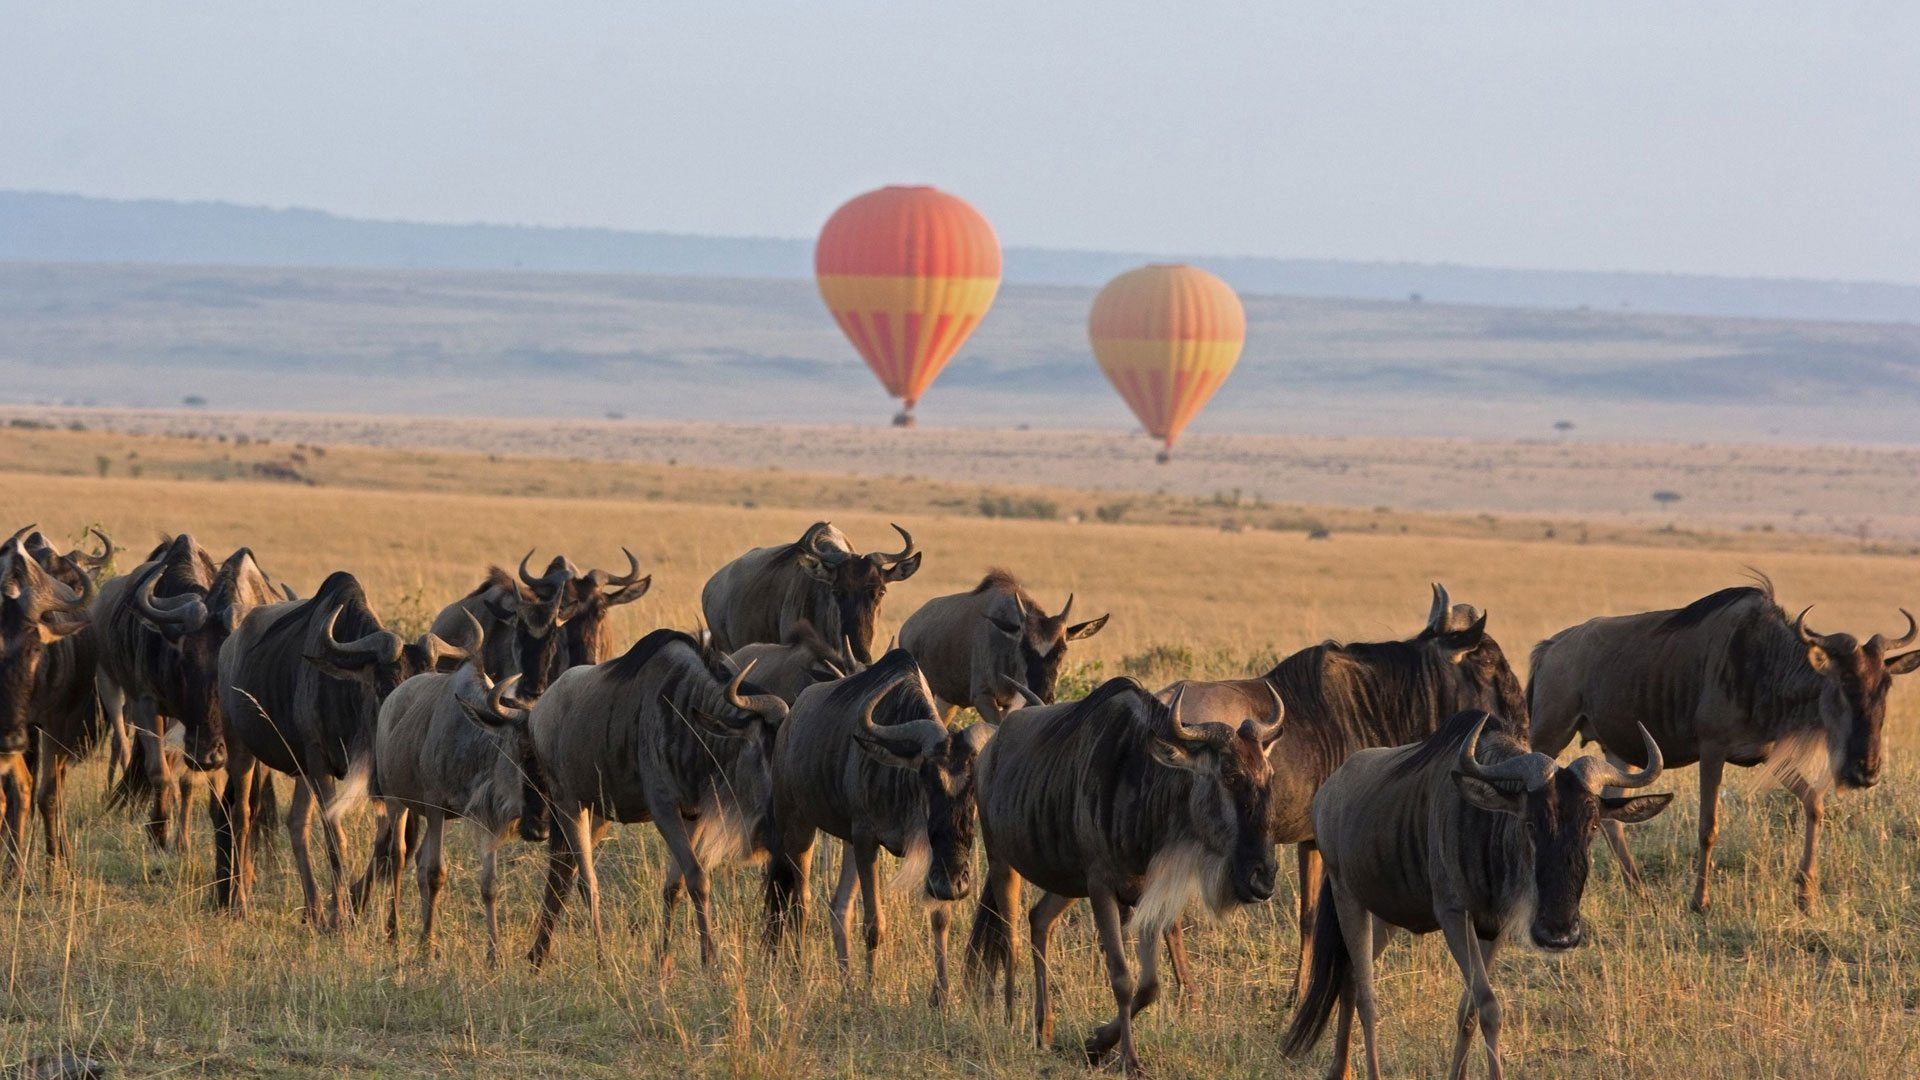 two hot air balloons launching over a herd of wildebeest in the Serengeti